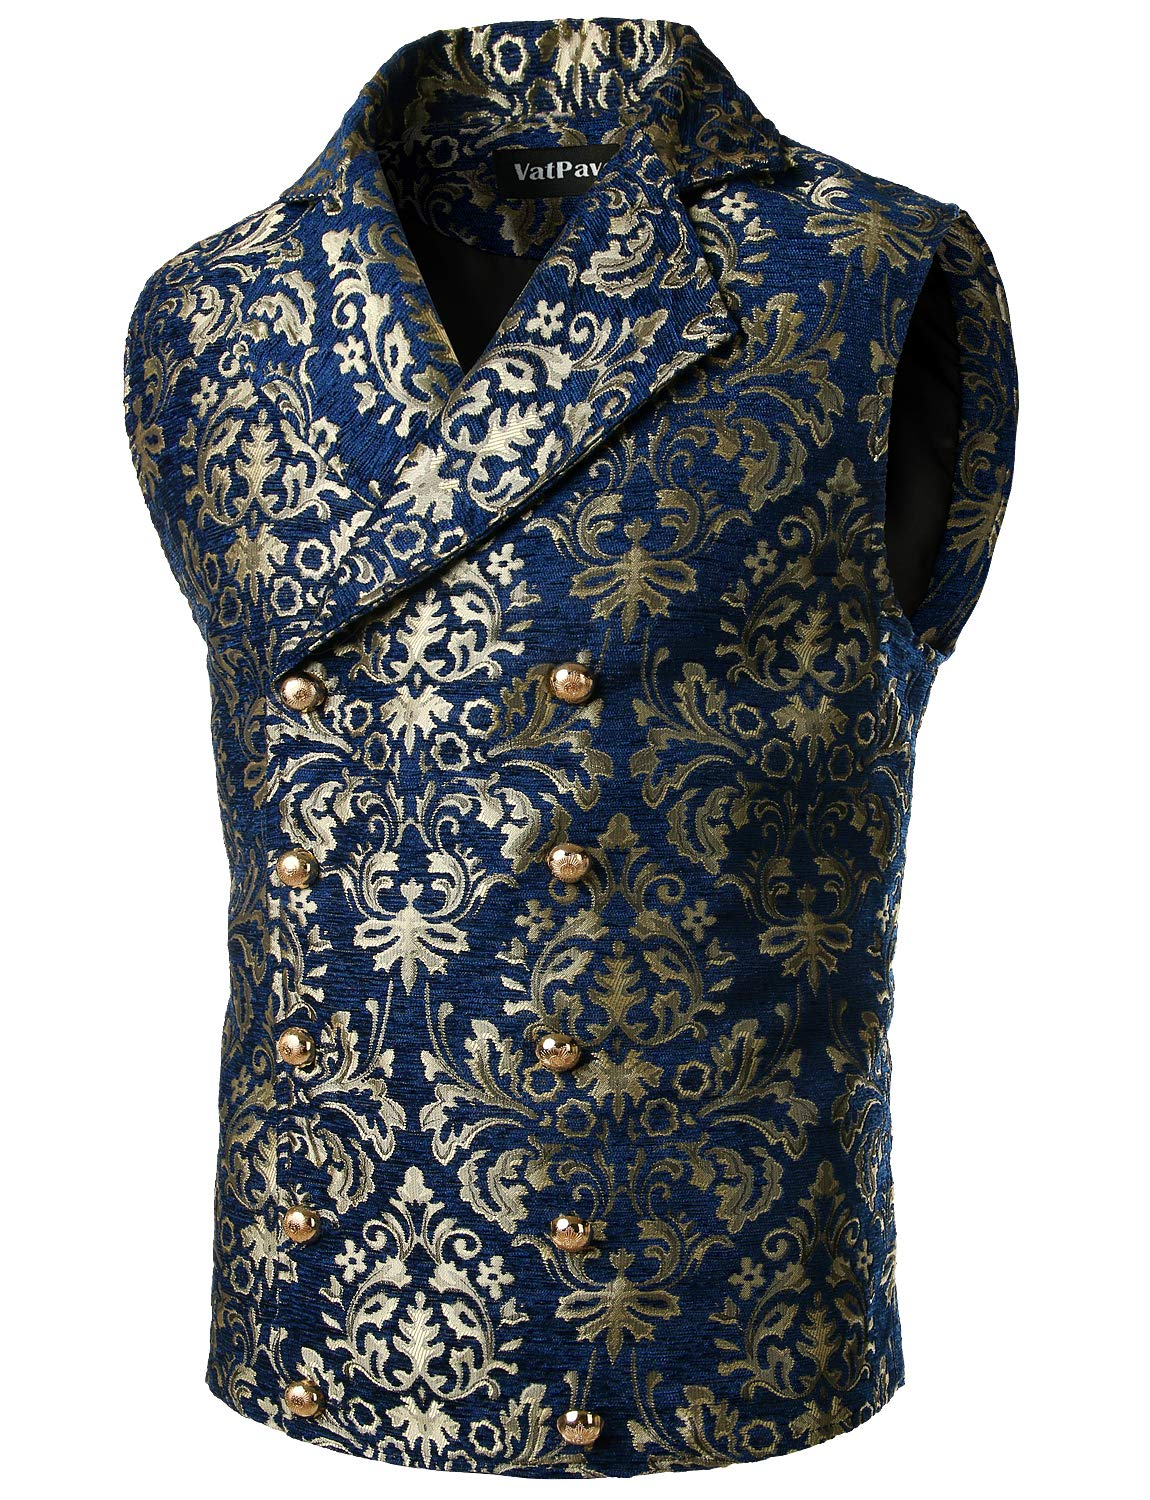 VATPAVE Mens Victorian Double Breasted Vest Gothic Steampunk Waistcoat Large SV16 Navy by VATPAVE